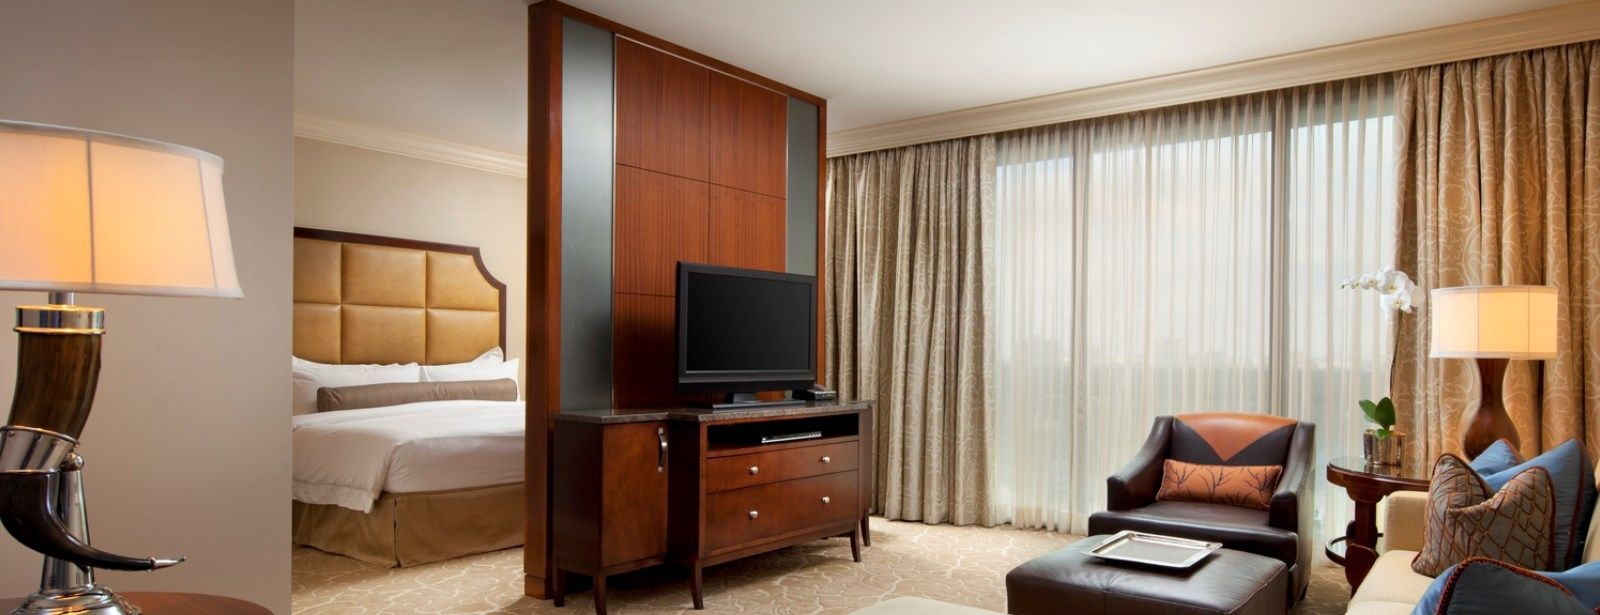 Junior Suite - Luxury Hotels in Houston - The St. Regis Houston Hotel